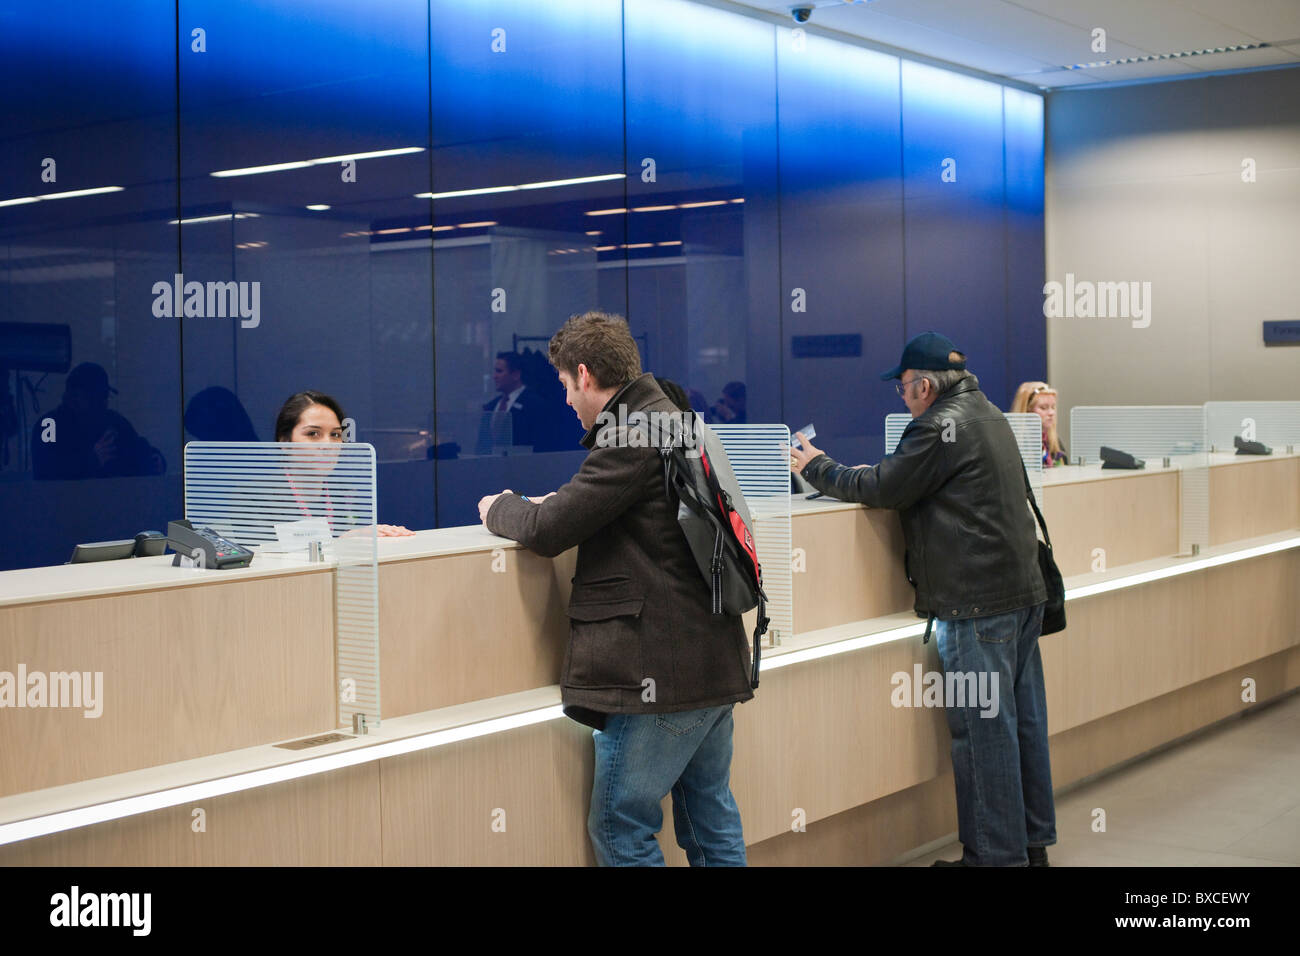 Teller stations in the Citibank new flagship high tech branch in the Union Square neighborhood of New York - Stock Image